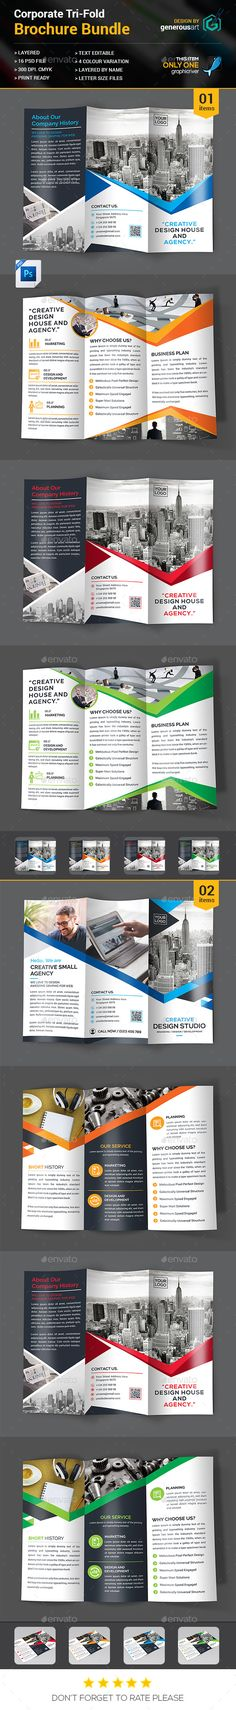 Corporate Tri-fold Brochure Design Template Bundle_2 in 1 - Brochures Print Template PSD. Download here: https://graphicriver.net/item/trifold-bundle_2-in-1/16963364?s_rank=237&ref=yinkira